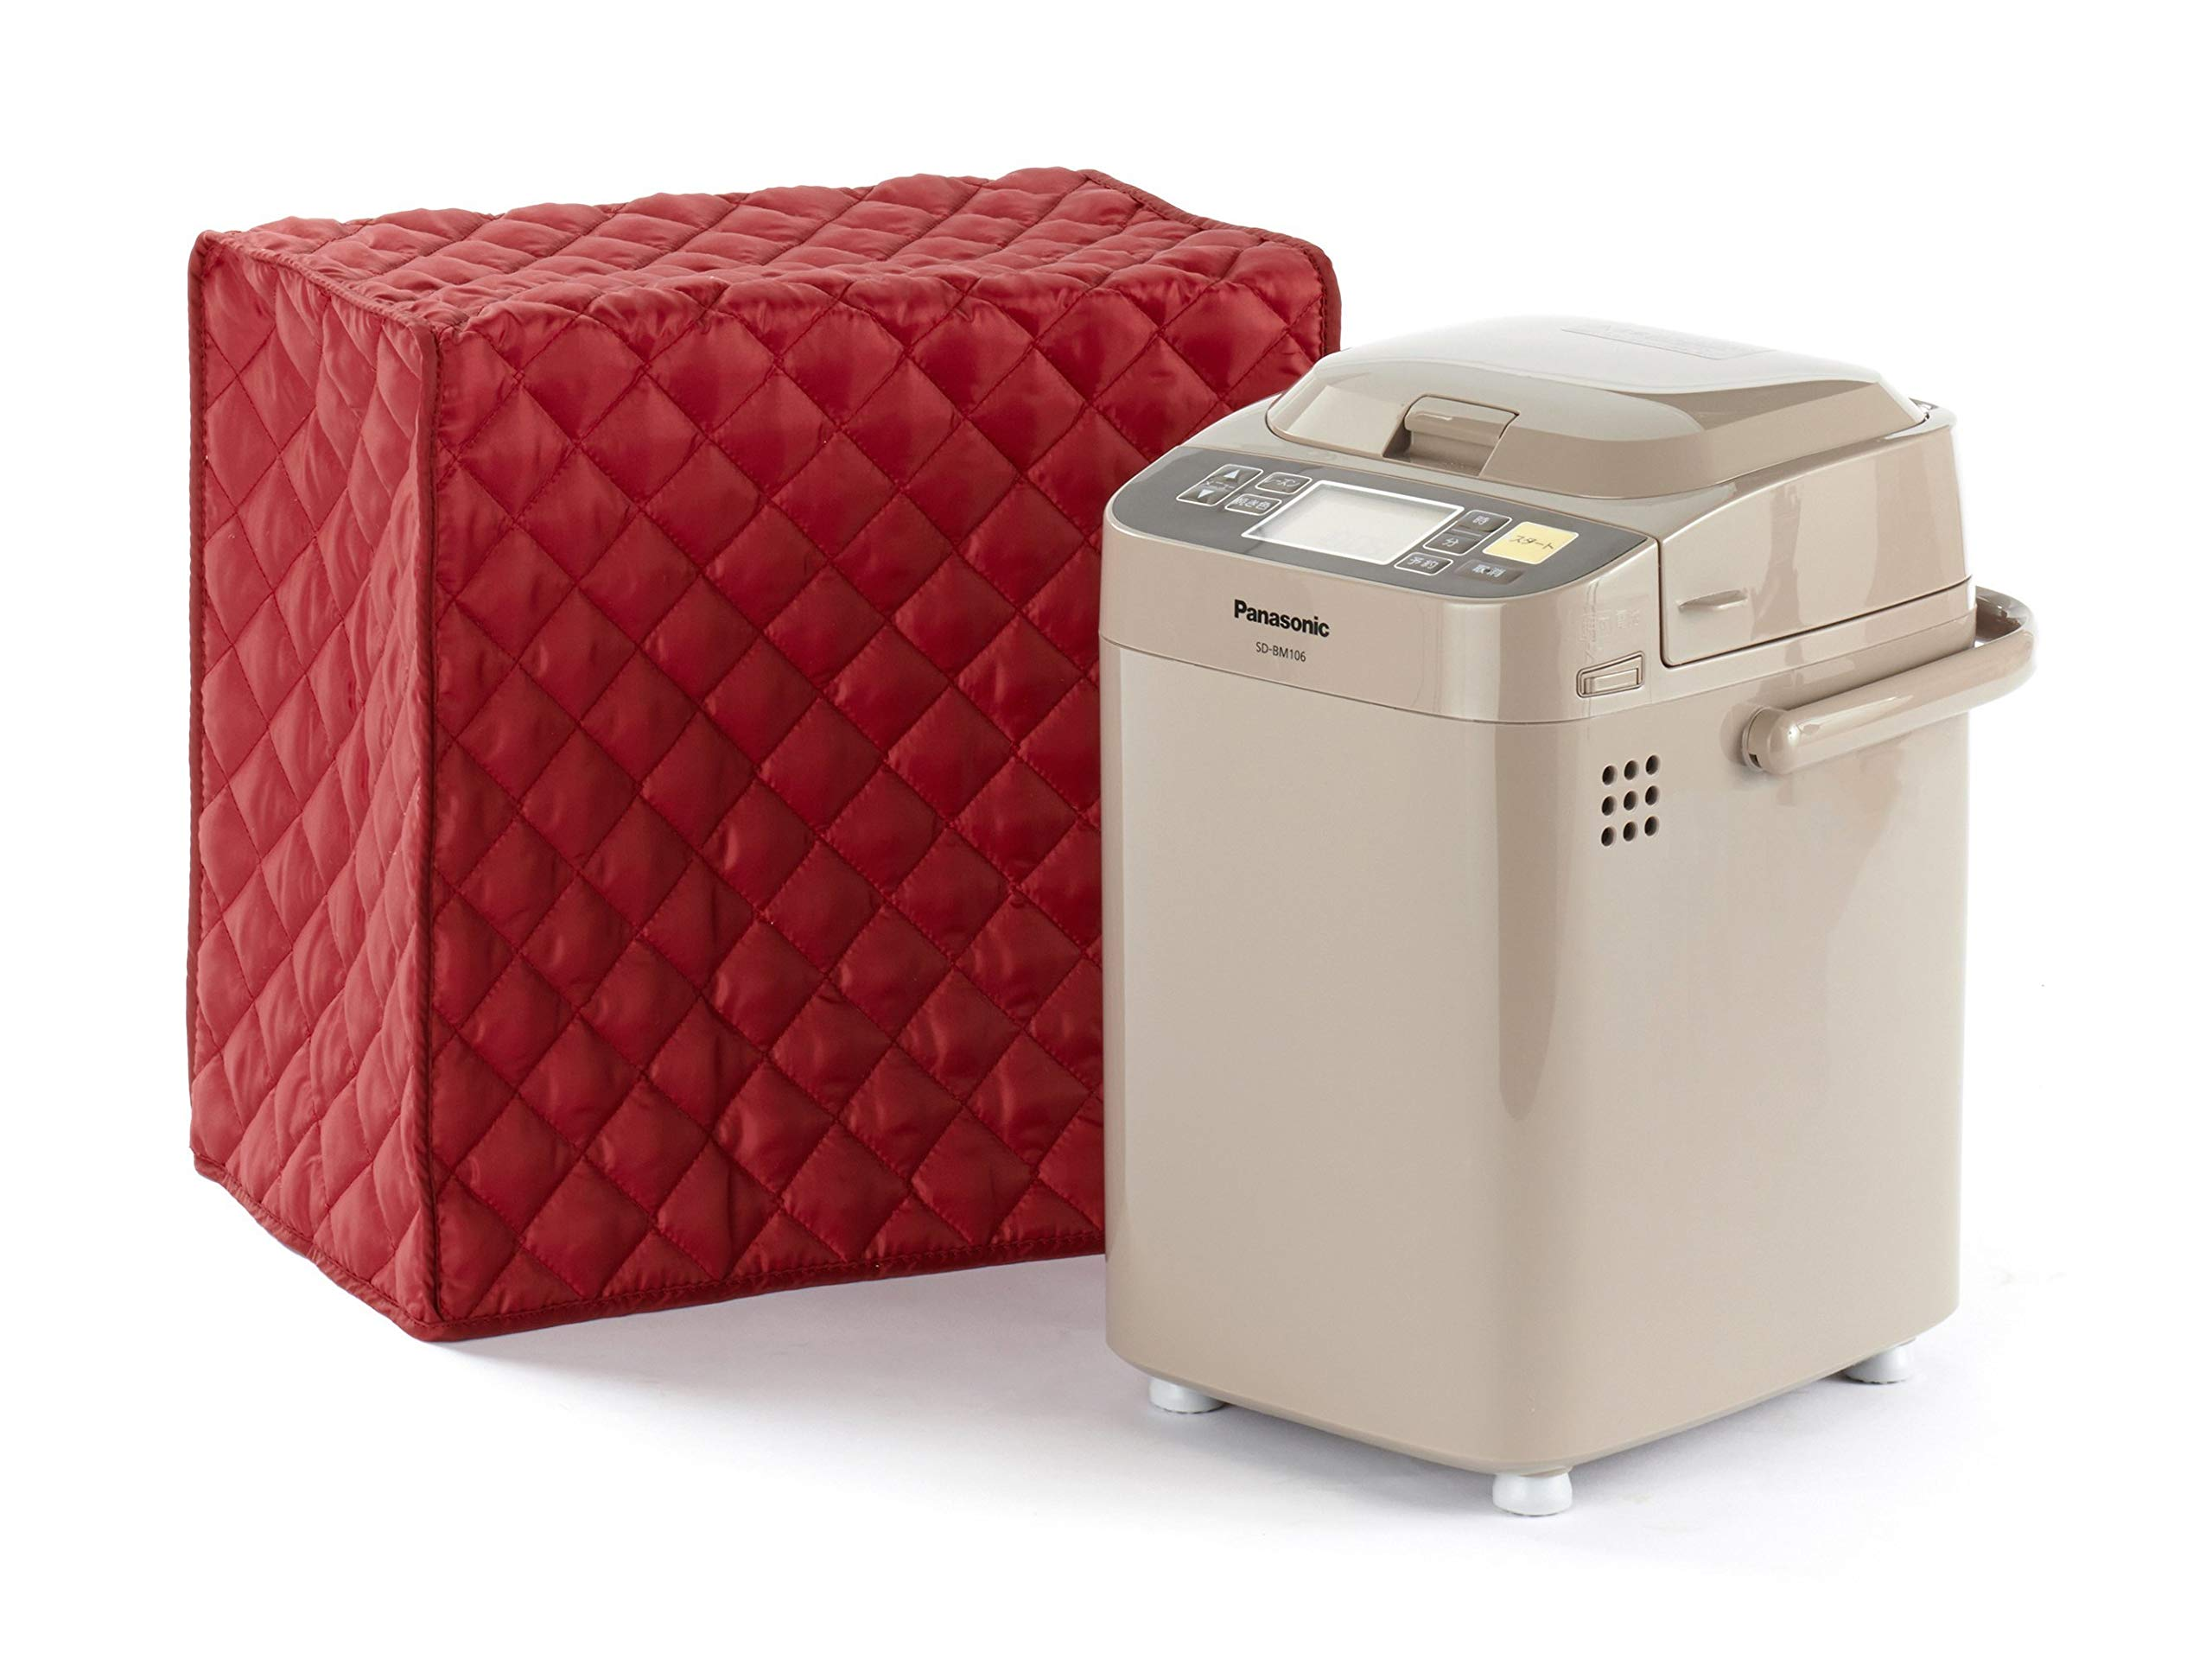 CoverMates – Bread Maker Cover – 17W x 11D x 15H – Diamond Collection – 2 YR Warranty – Year Around Protection - Red